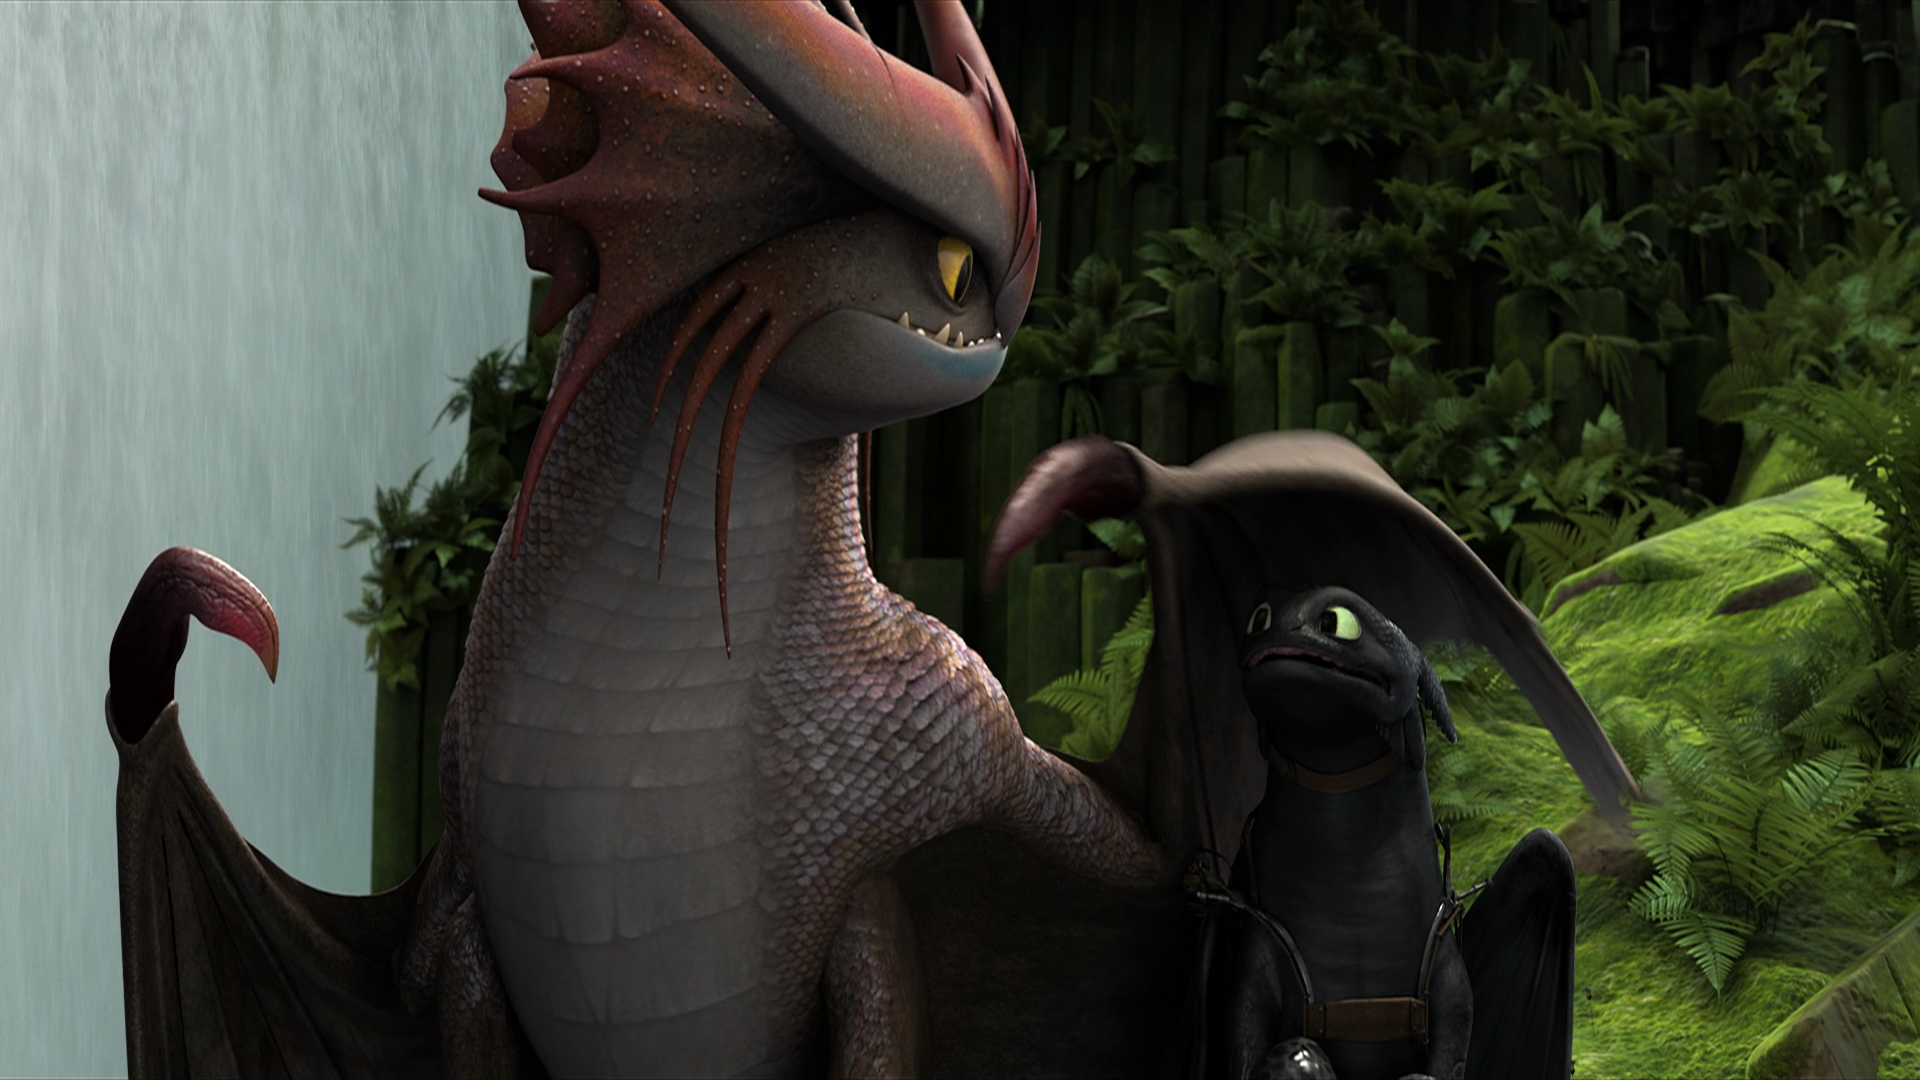 toothless-how-to-train-your-dragon-images | wallpaper.wiki